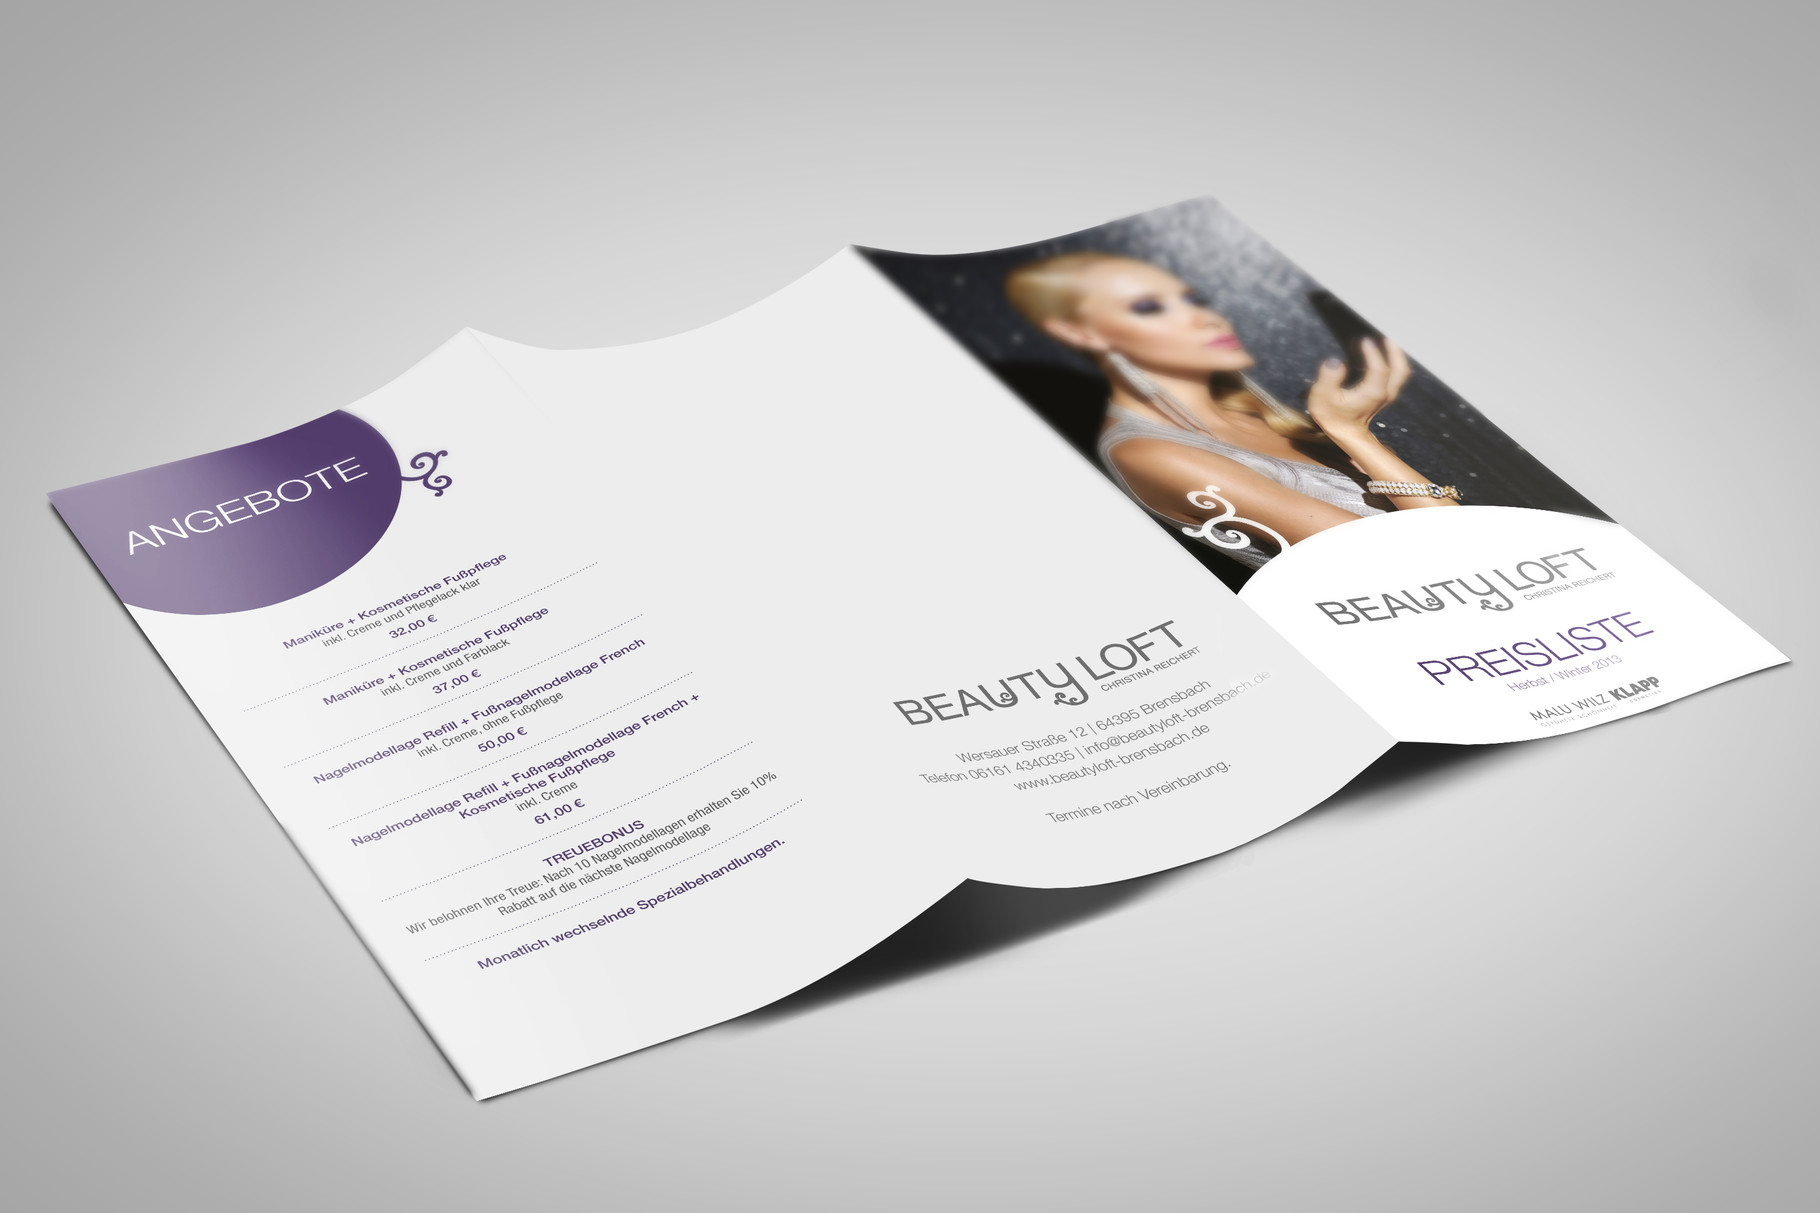 Corporate Design, Logoentwicklung, Logo, Grafikdesign, Grafik, Gestaltung, Beautyloft Preisliste Winter